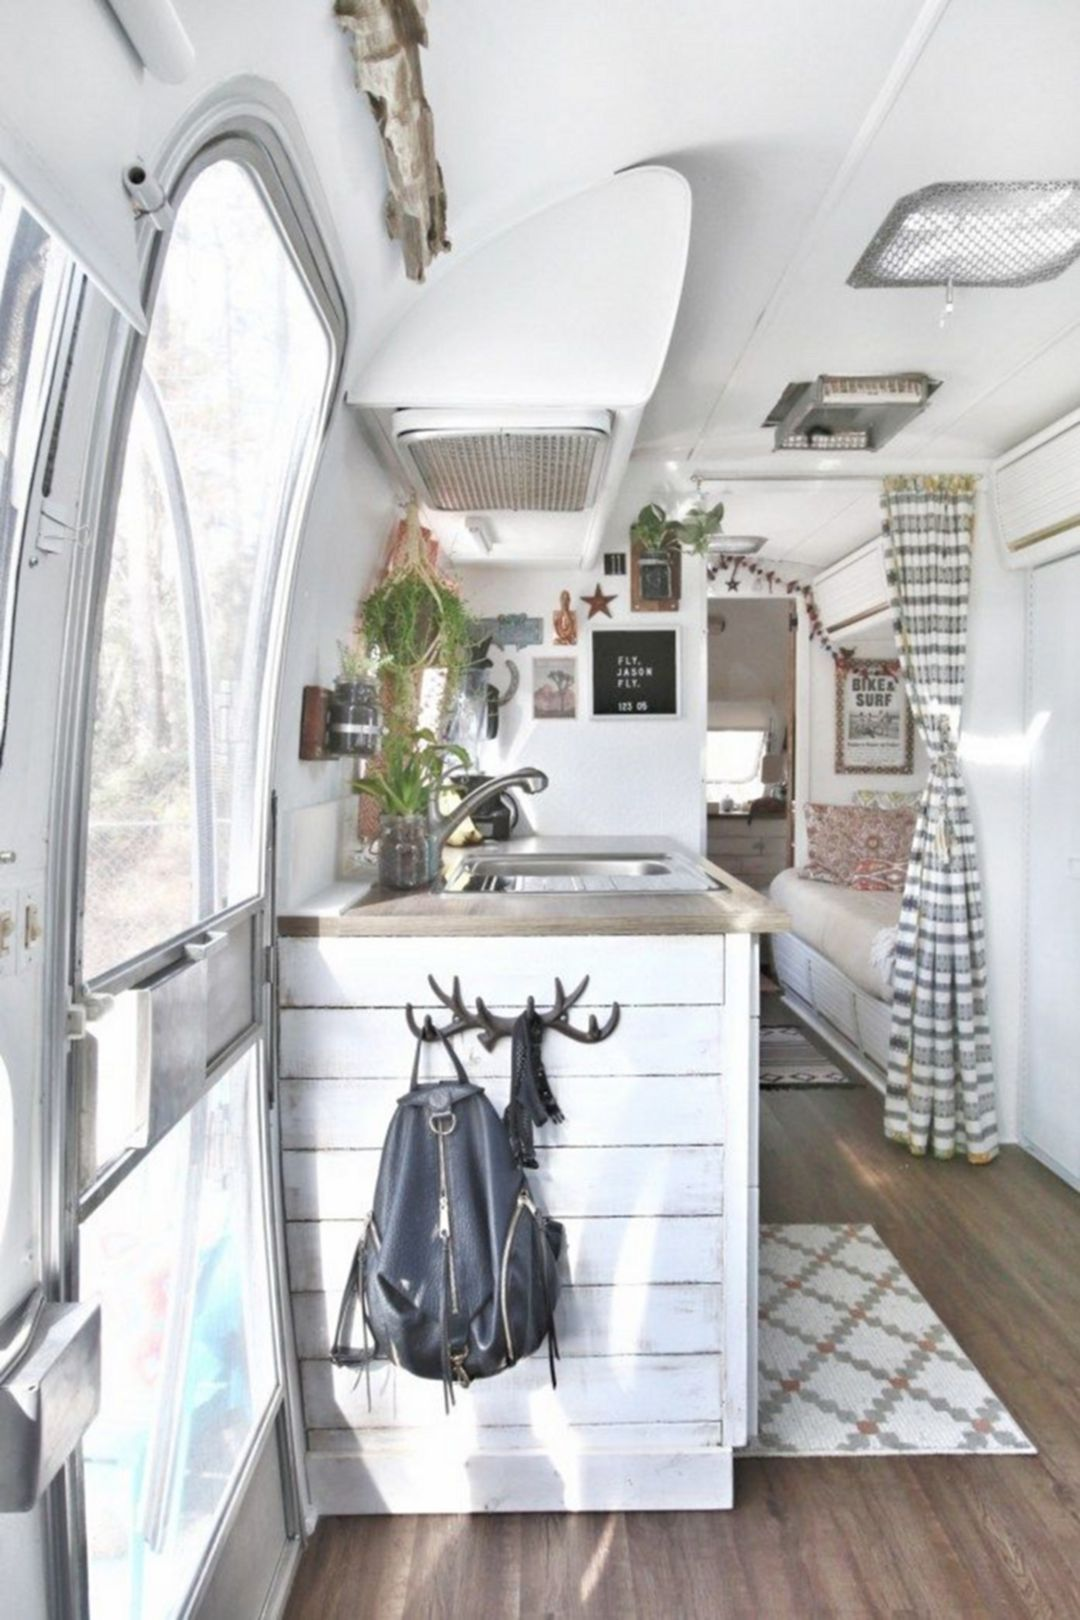 25 Inspiration Image Of Best Inspiration Camper Van Decor Airstream Living Rv Living Remodeled Campers